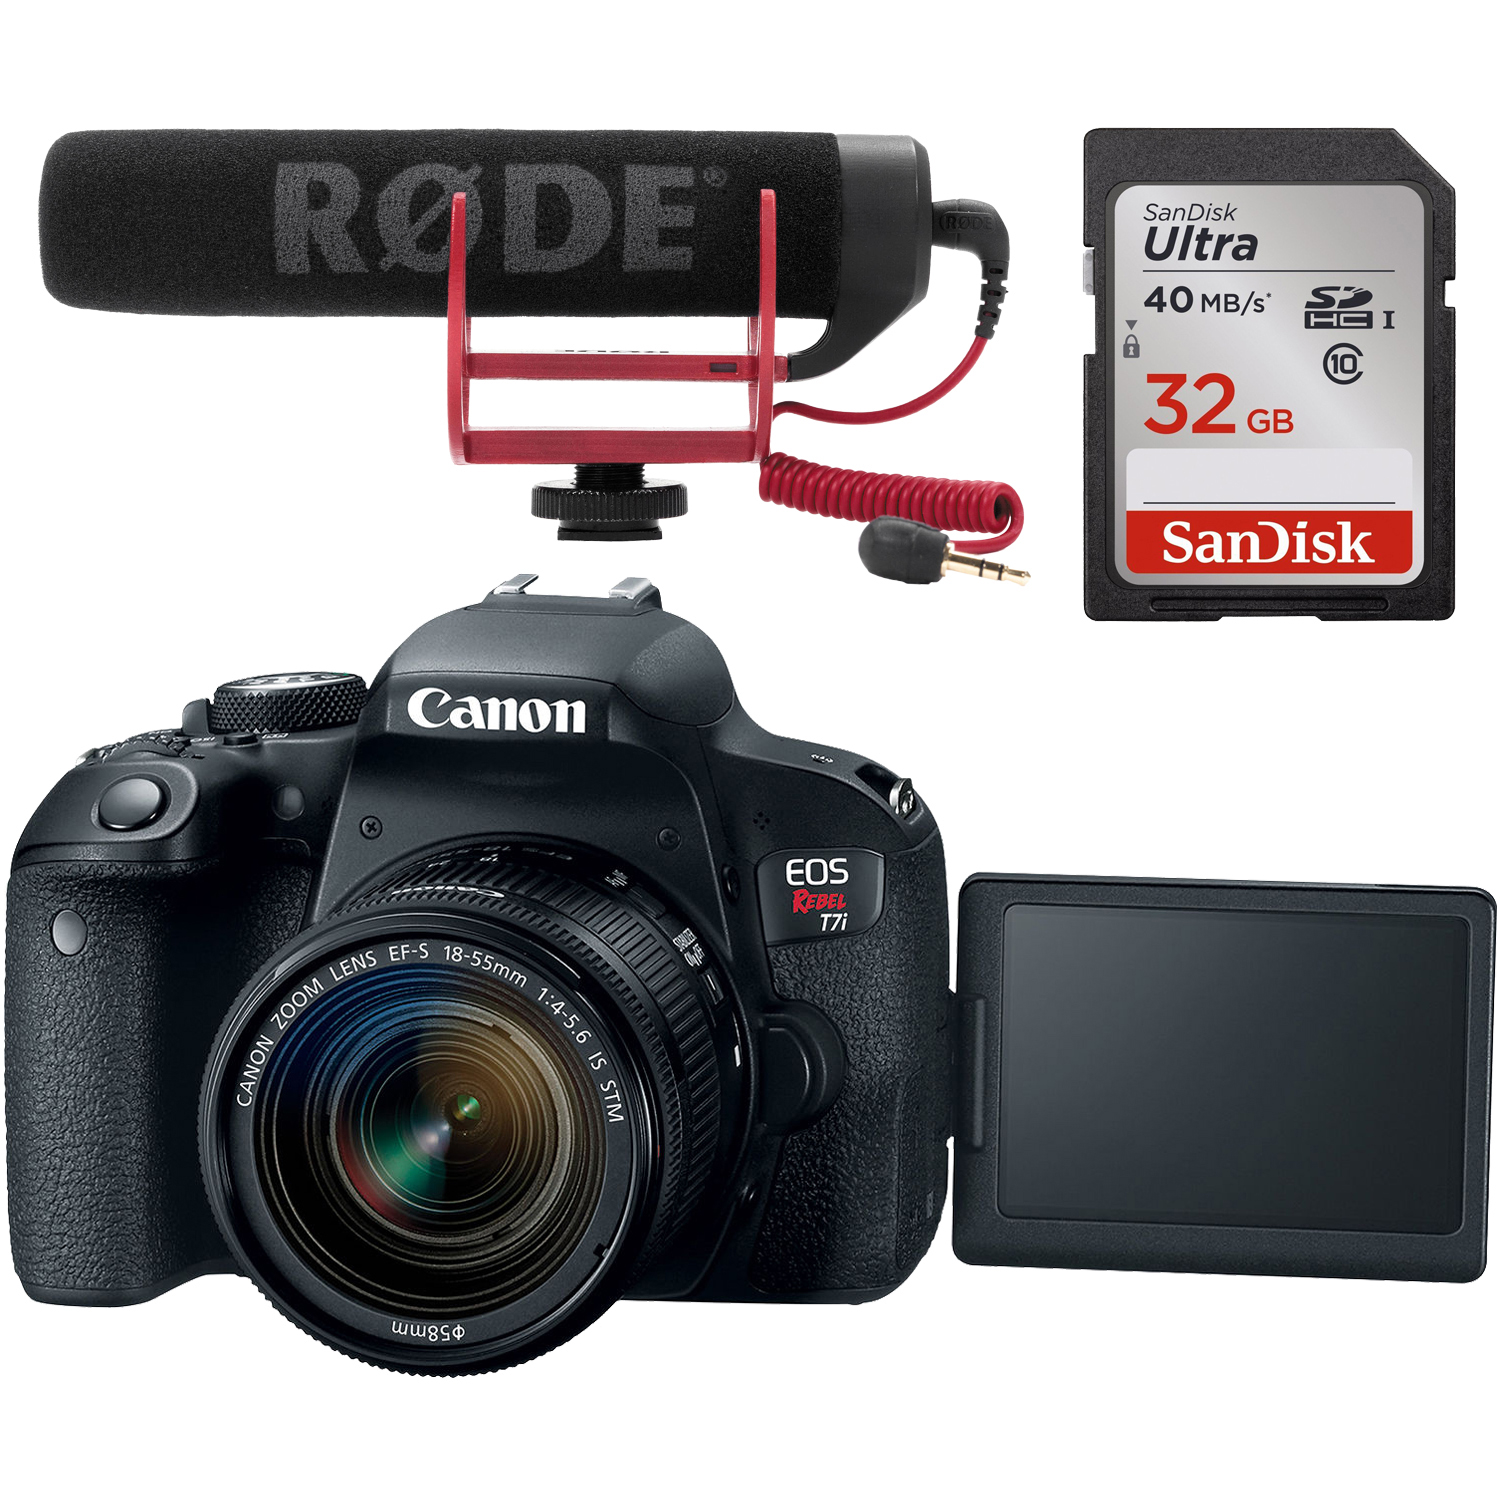 Canon EOS Rebel T7i Digital SLR Camera & EF-S 18-55mm IS